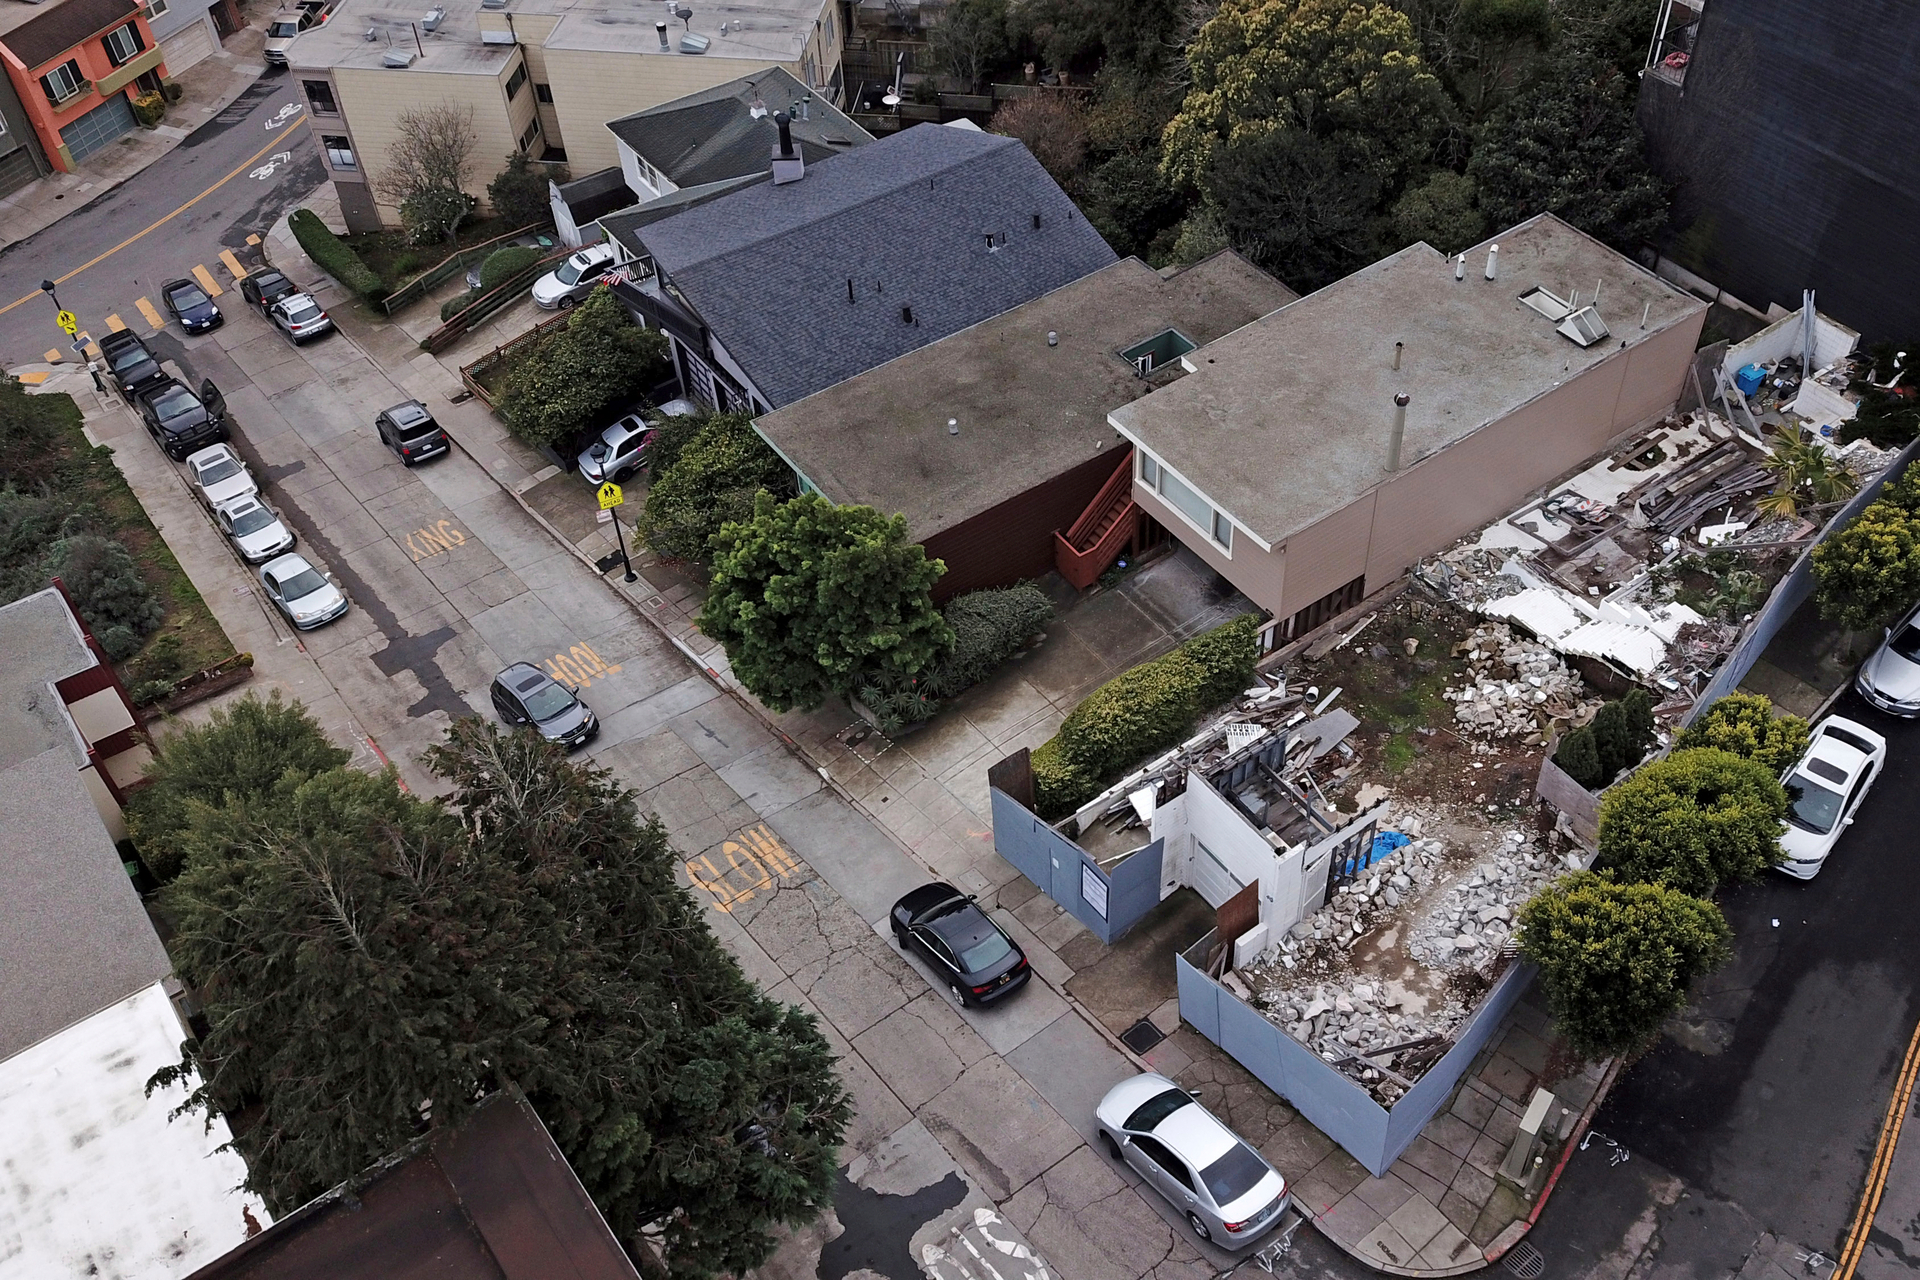 Man who 'illegally' razed his historic San Francisco home must rebuild an exact replica